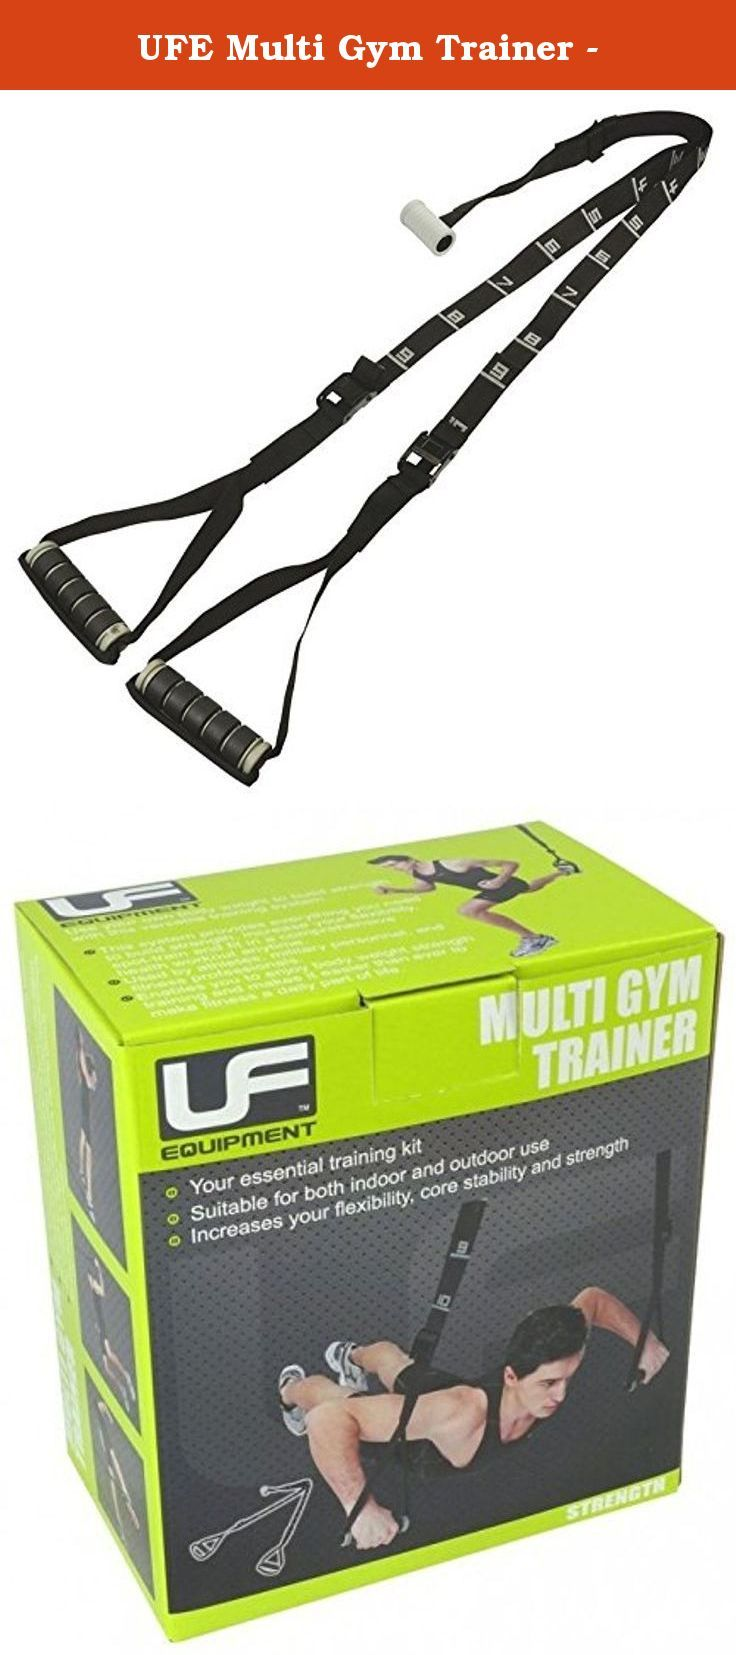 UFE Multi Gym Trainer -. Suitable for use indoors or out, its lightweight construction enables you to enjoy body weight training as a daily part of your life almost anywhere. Increases your flexibility, core stability and strength.